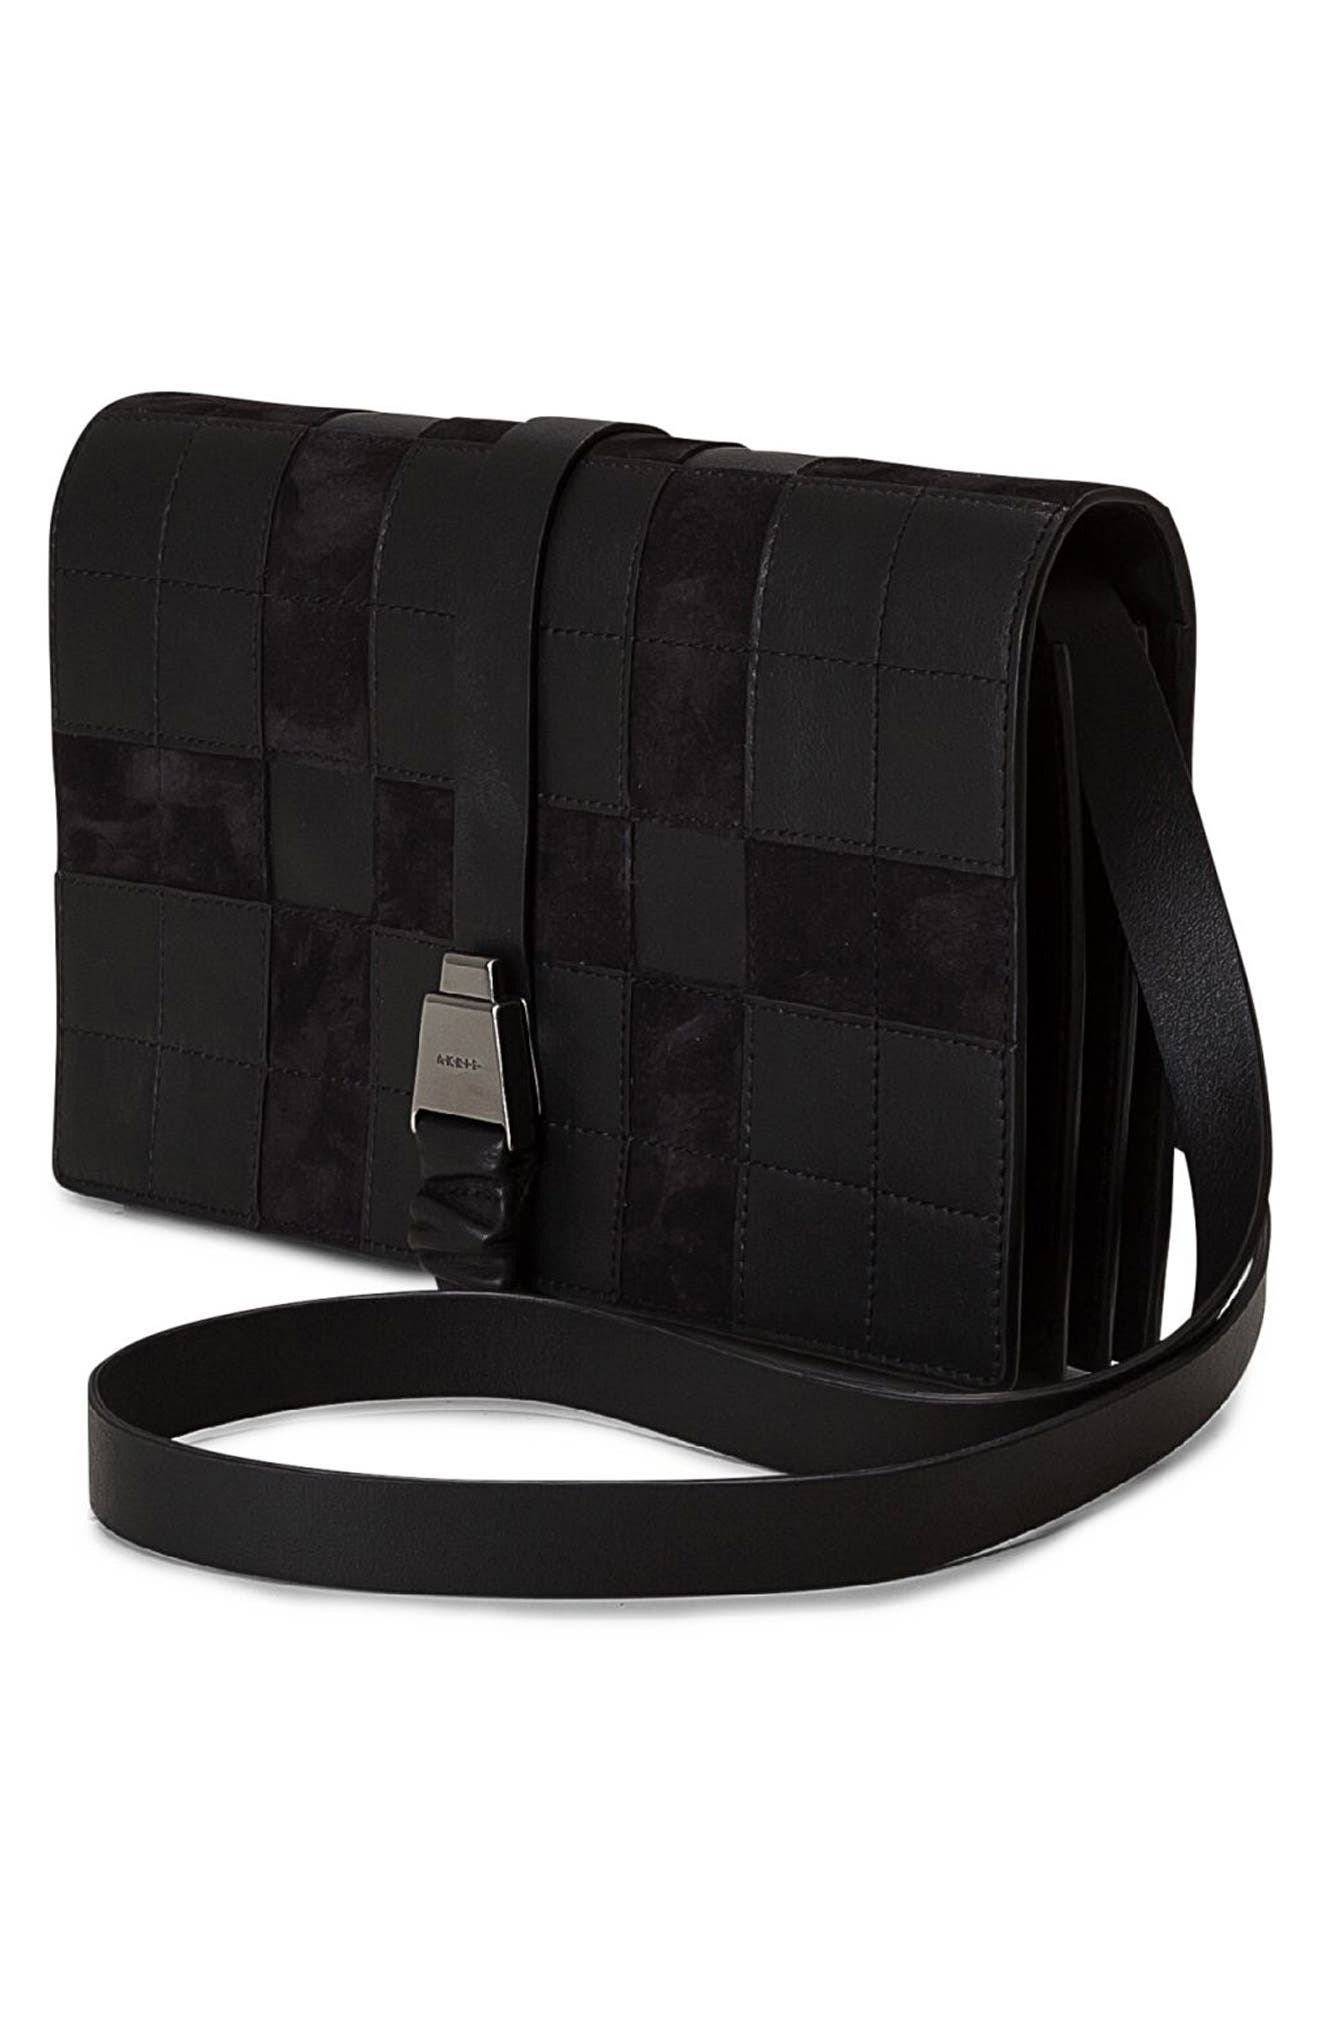 Alice Leather Crossbody Bag,                             Alternate thumbnail 2, color,                             Black